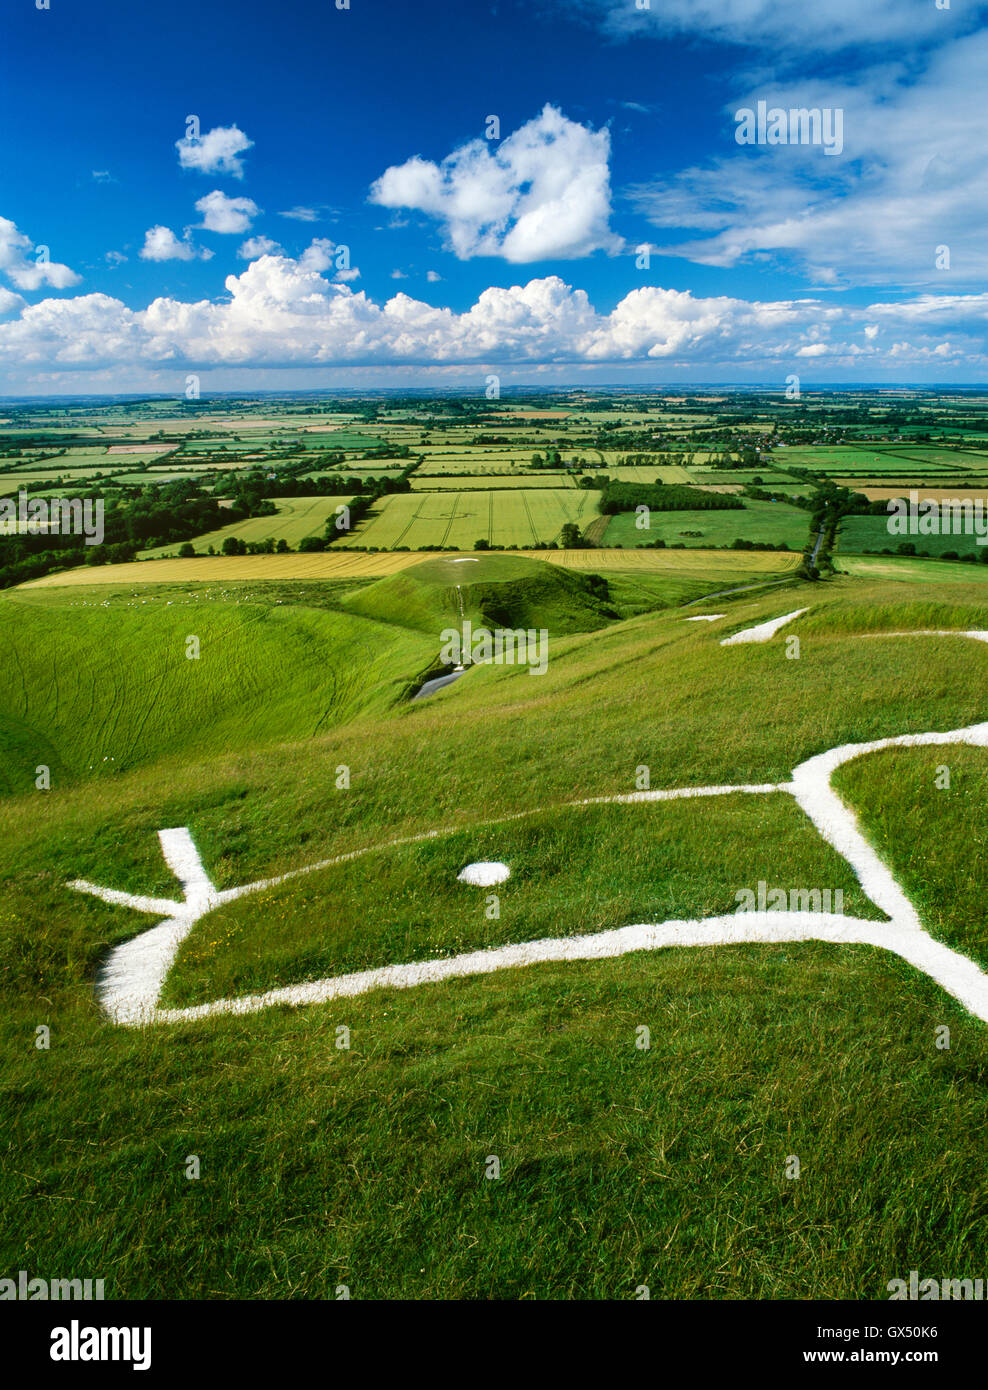 Head & eye of the dragon-like Uffington White Horse chalk figure carved on the hillside above the flat-topped - Stock Image